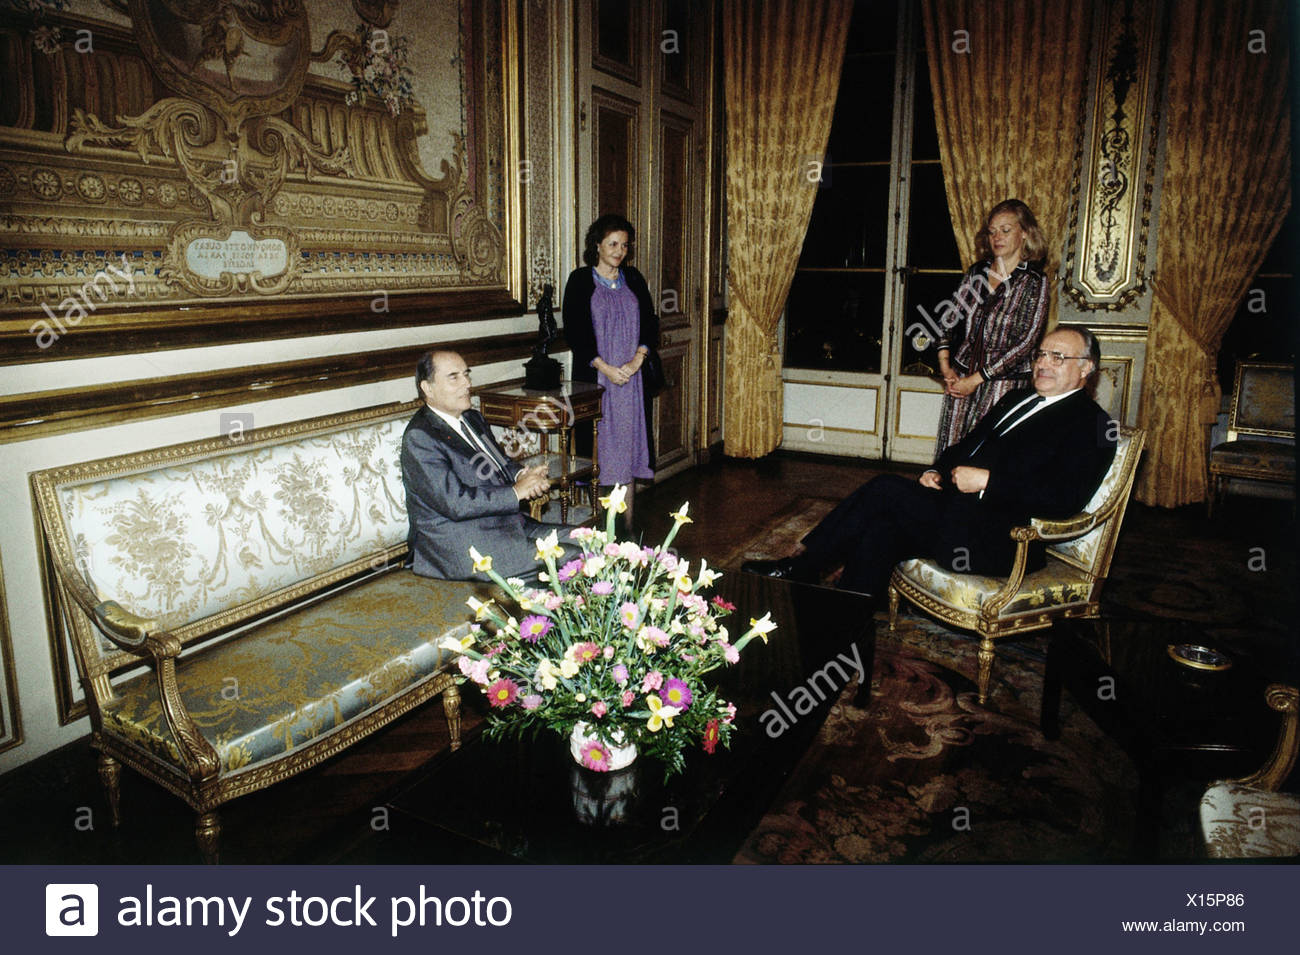 Kohl, Helmut, * 3.4.1930, German politician (CDU), chancellor of Germany 1982 - 1998, half length, with Francois Mitterrand, 1980s, Additional-Rights-Clearances-NA - Stock Image